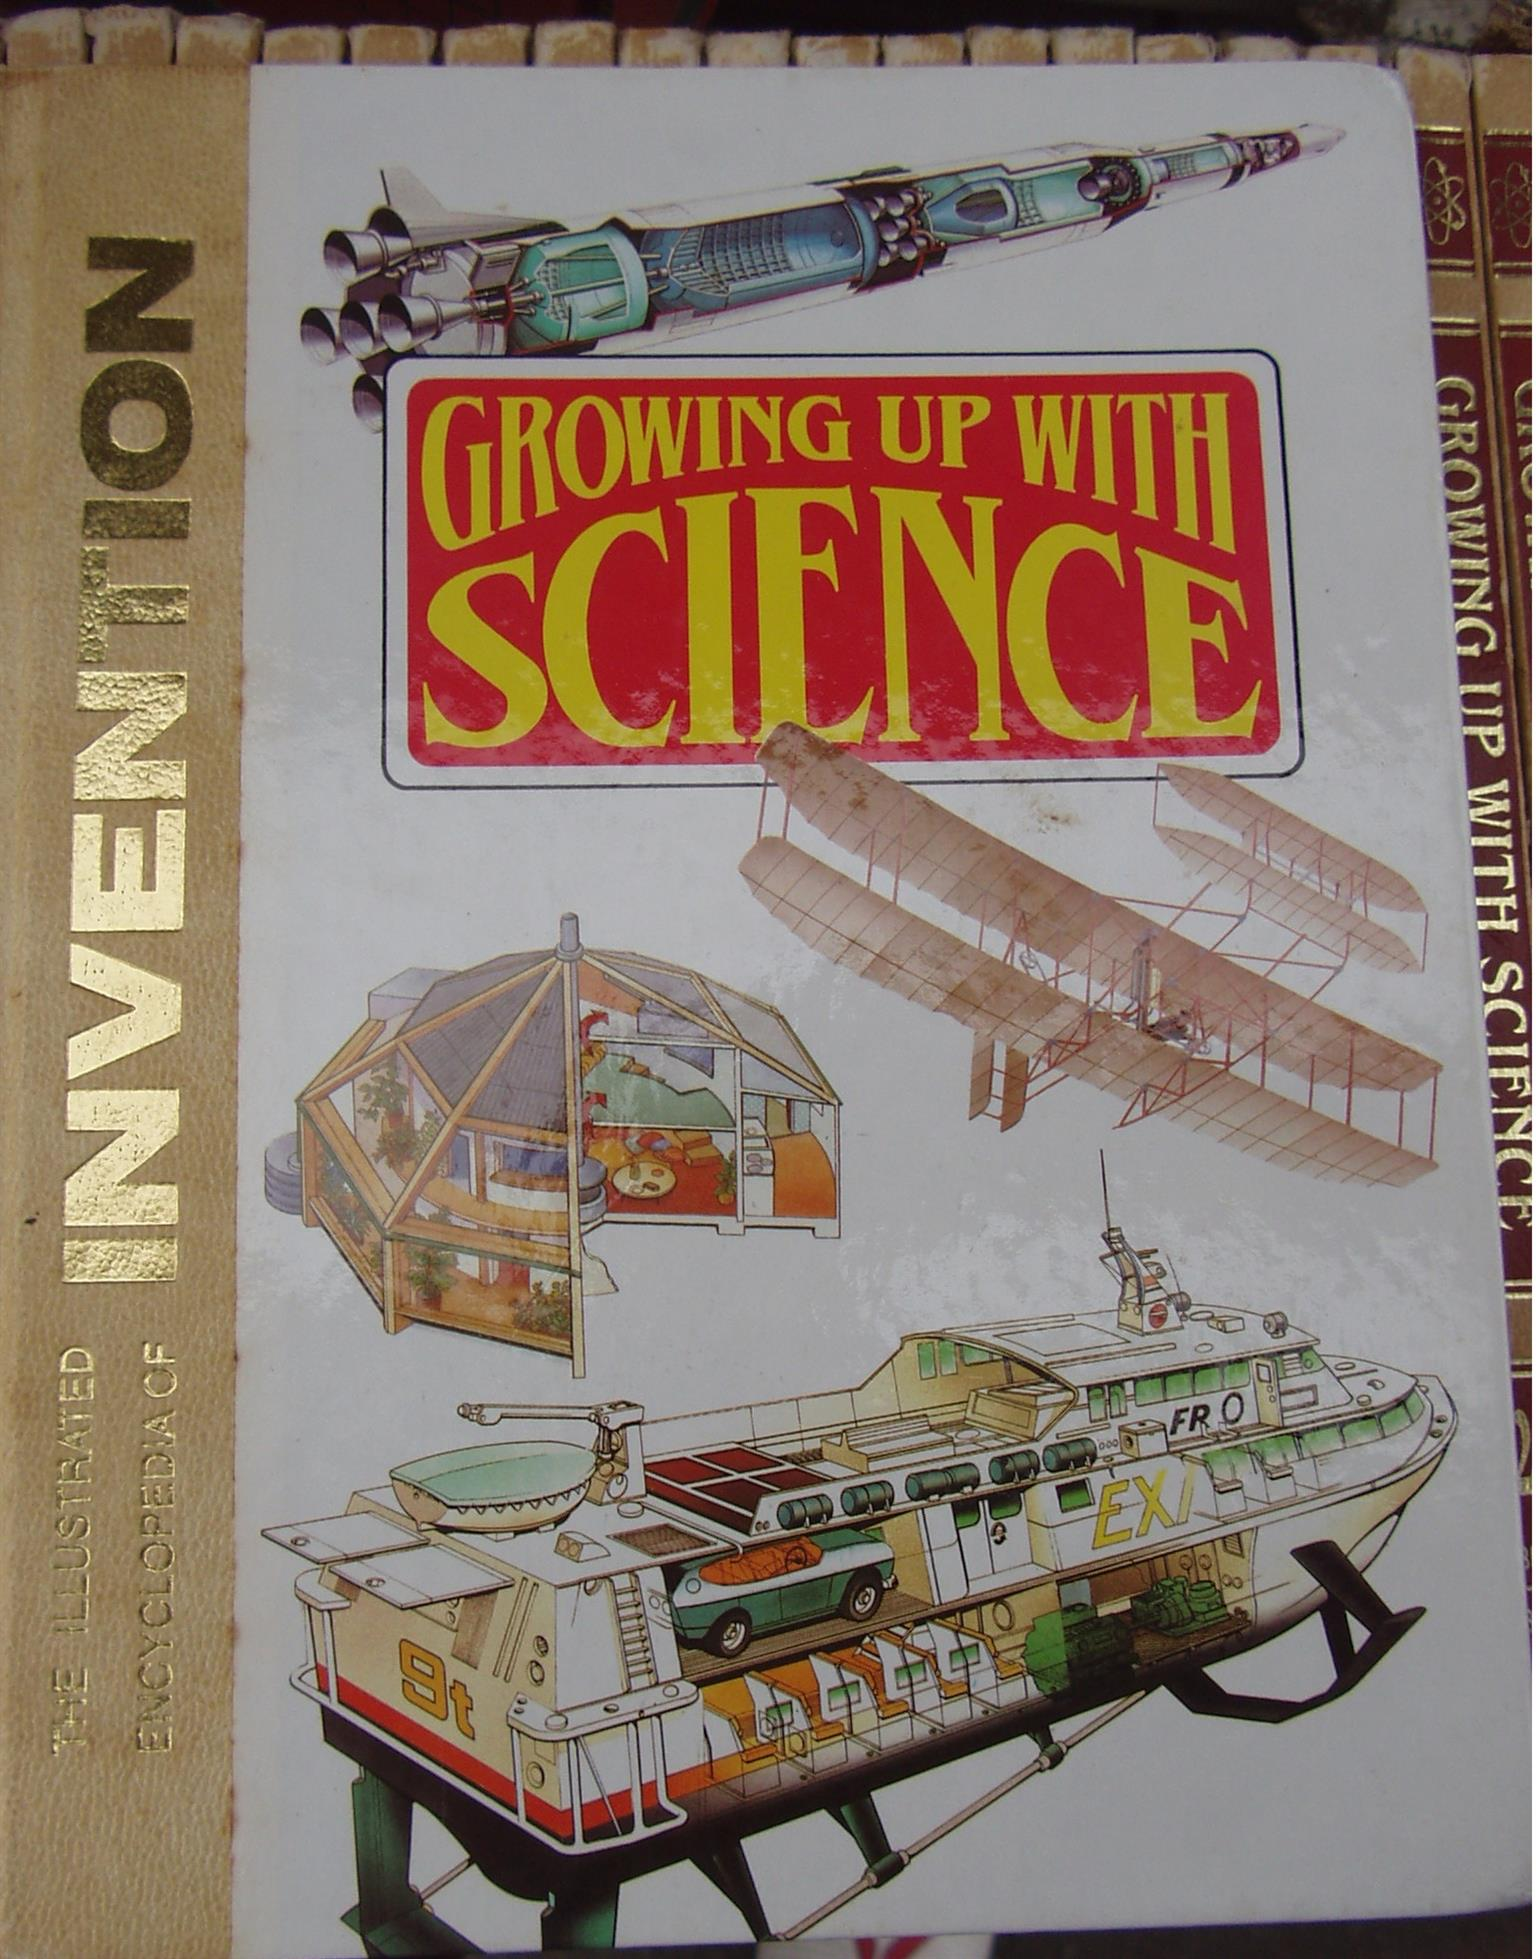 Growing Up With Science The Illustrated Encyclopedia of Invention - Volumes 1 to 26